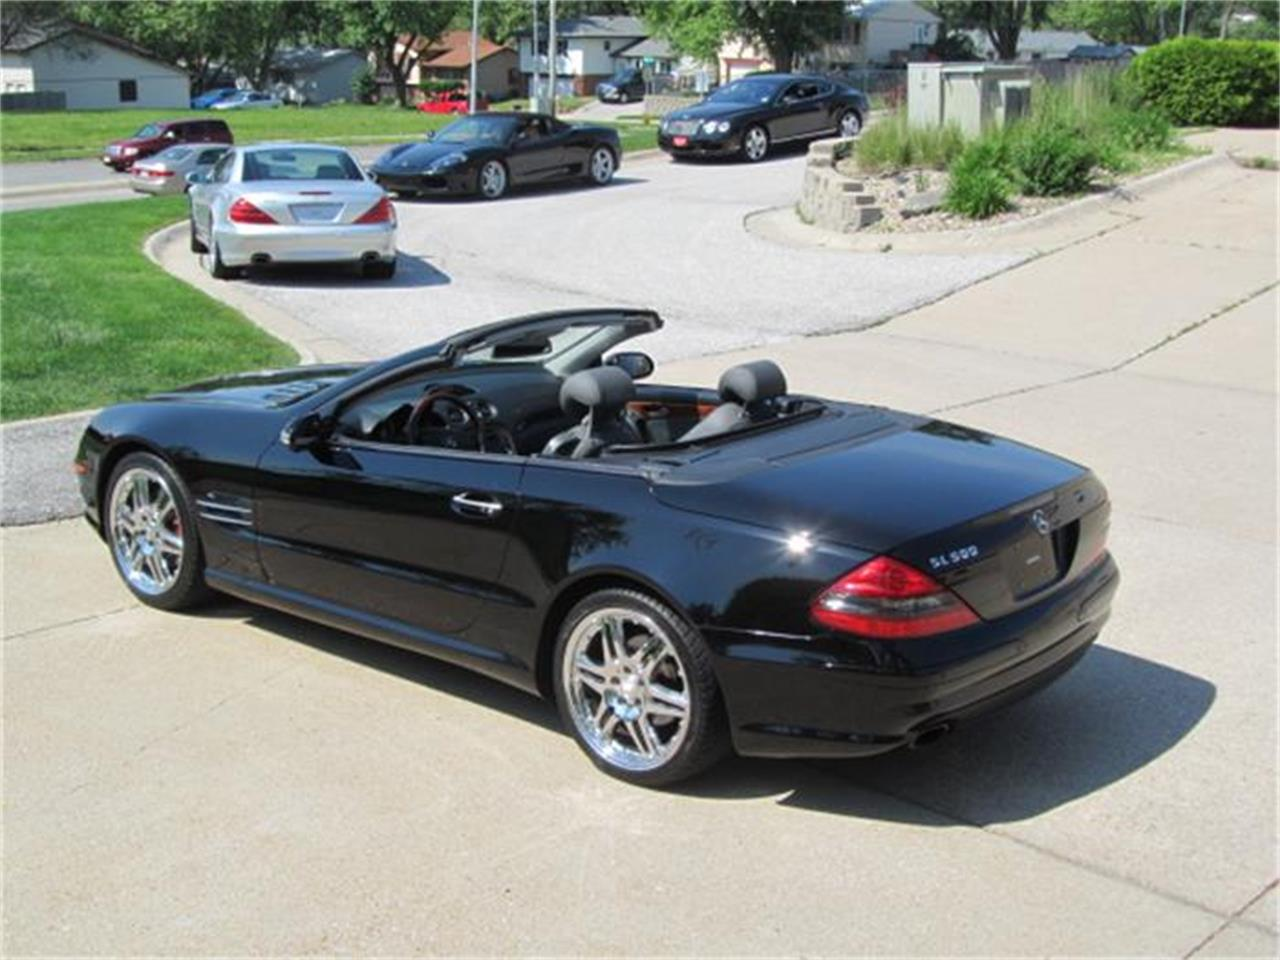 Large Picture of '03 Mercedes-Benz SL500 located in Nebraska - $19,900.00 Offered by Classic Auto Sales - I54G